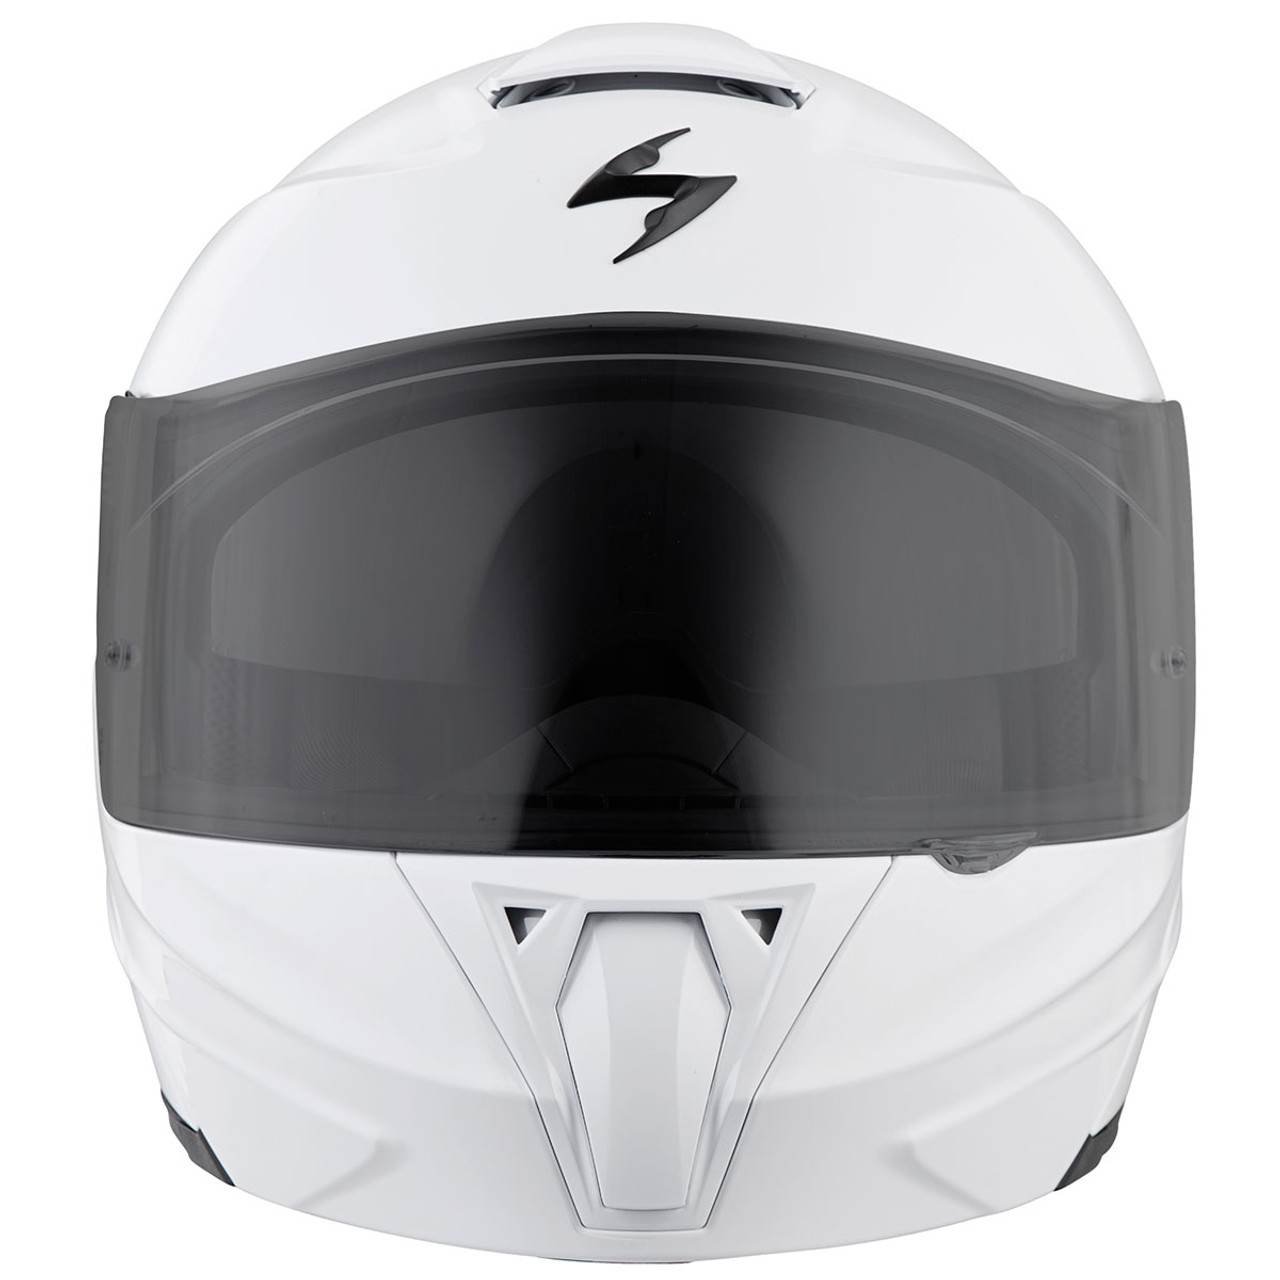 d76ca4d4 Scorpion EXO-GT920 Solids Modular Motorcycle Helmet - Get Lowered Cycles